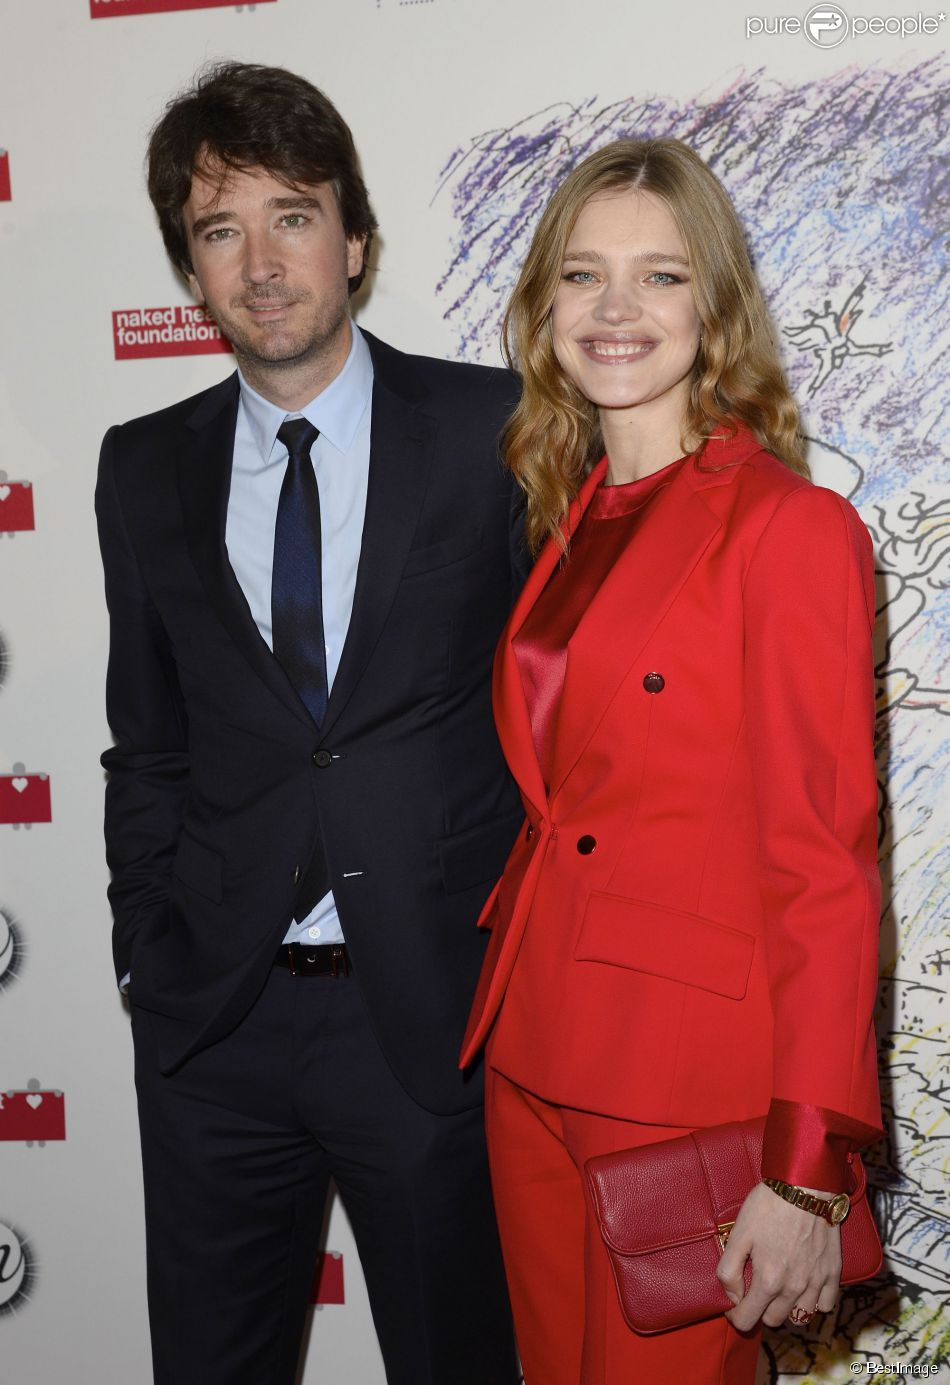 "Antoine Arnault et sa compagne Natalia Vodianova - Soirée ""Monumenta 2014"" au Grand Palais à Paris le 13 mai 2014.  'The strange city' Exhibition by Ilya and Emilia Kabakov at Monumenta 2014 : Dinner to benefit 'Naked Heart Foundation'. Held at Grand Palais on May 13, 2014 in Paris, France.13/05/2014 - Paris"